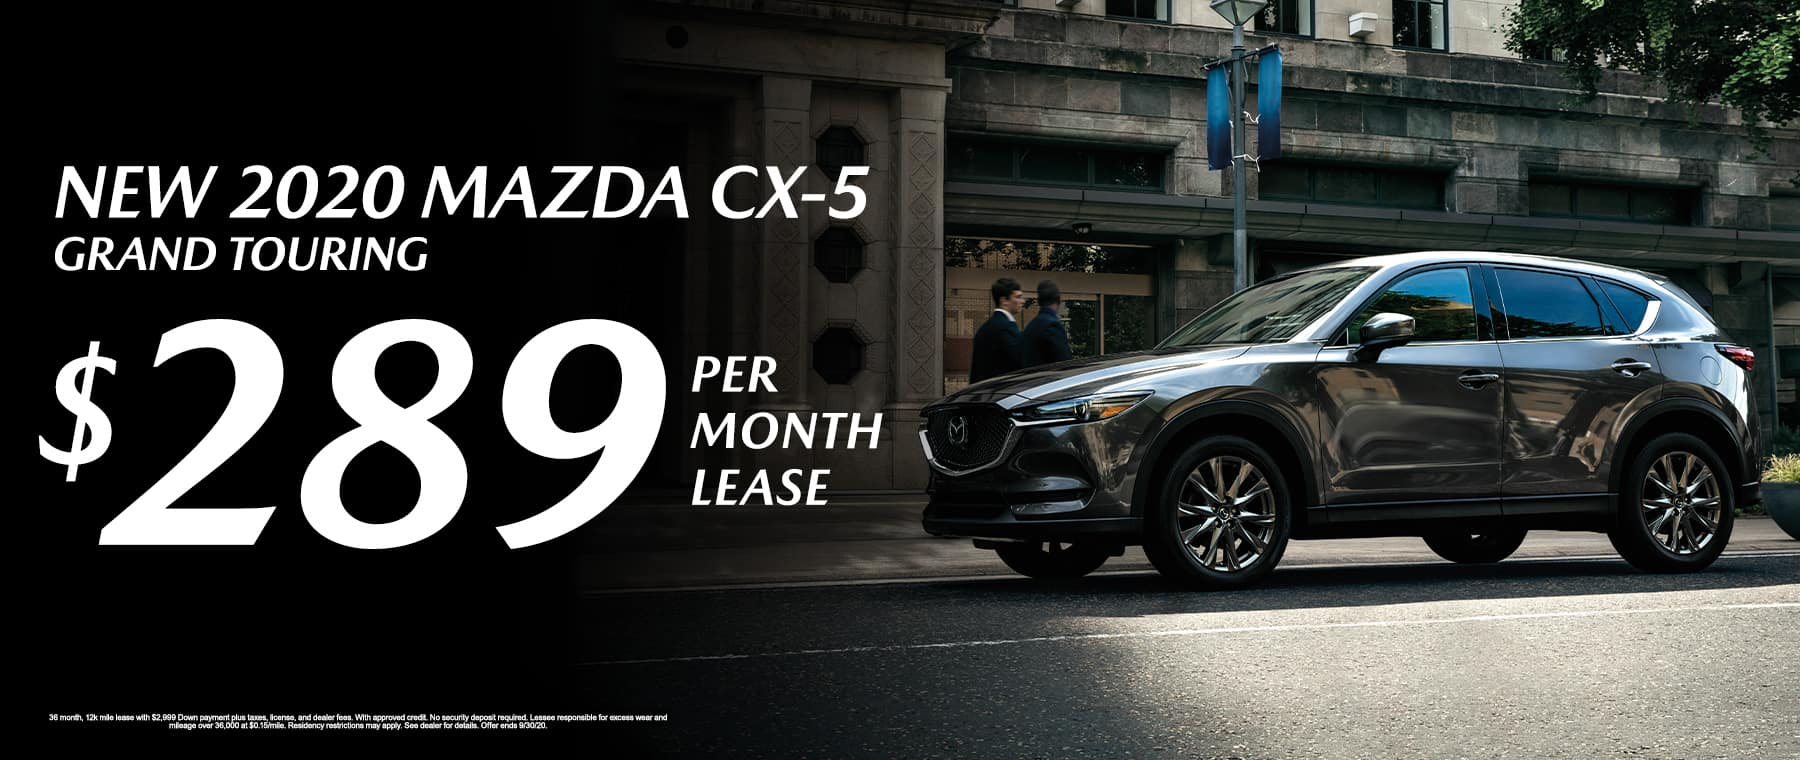 Lease a New 2020 Mazda CX-5 Grand Touring for $289 per month at Mazda of Fort Walton Beach!